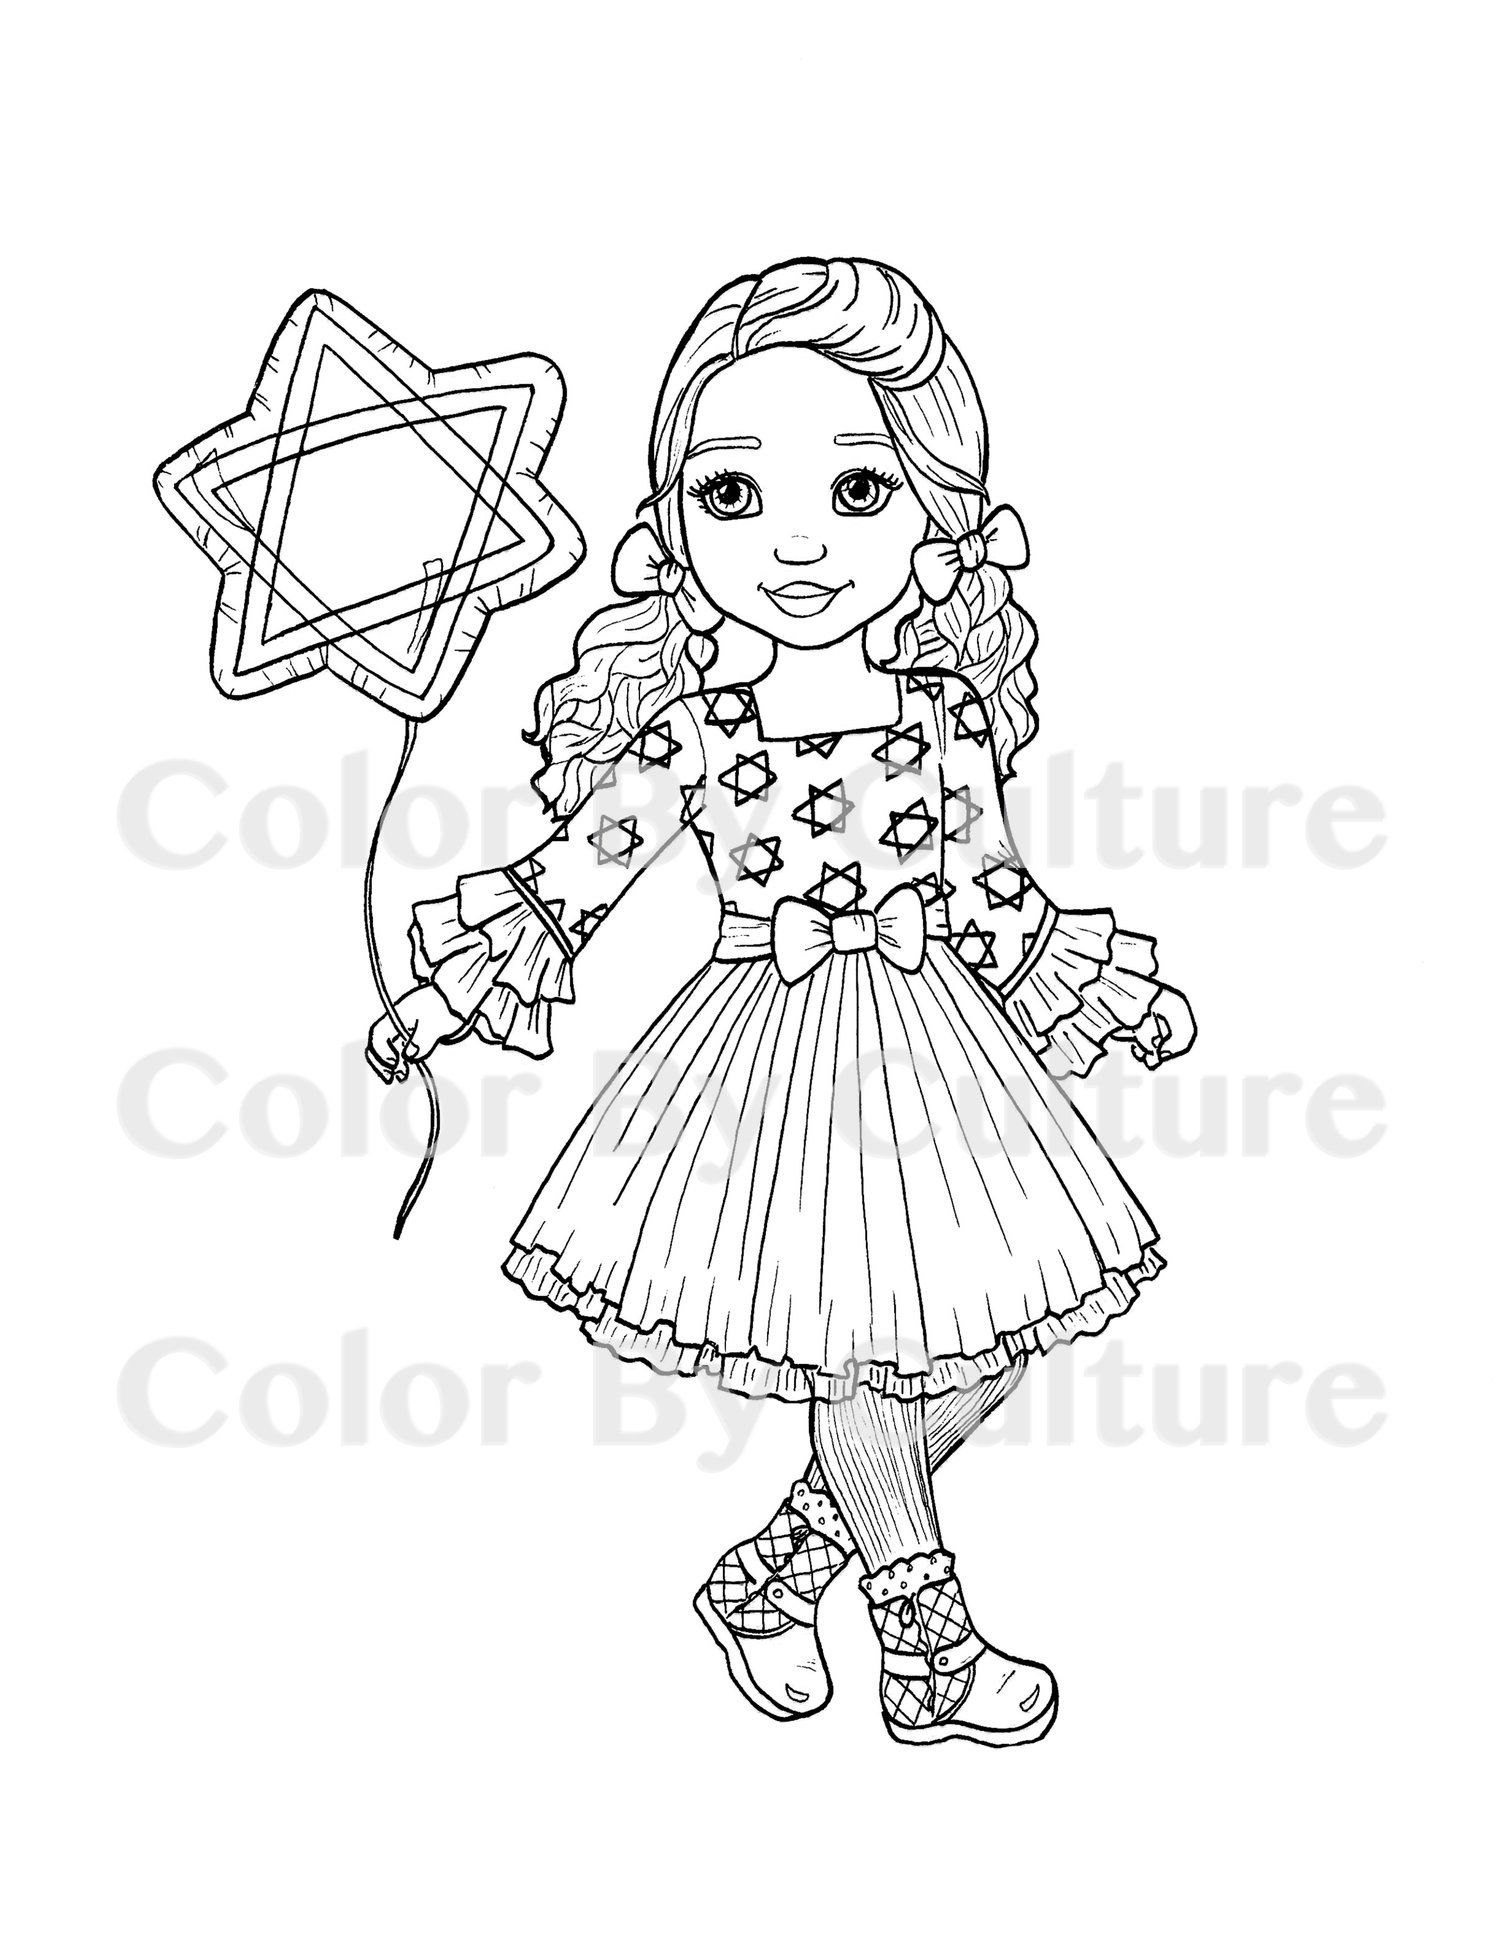 Hanukkah Girl Coloring Page Digital Stamp Color By Culture Coloring Pages For Girls Coloring Pages Digital Stamps